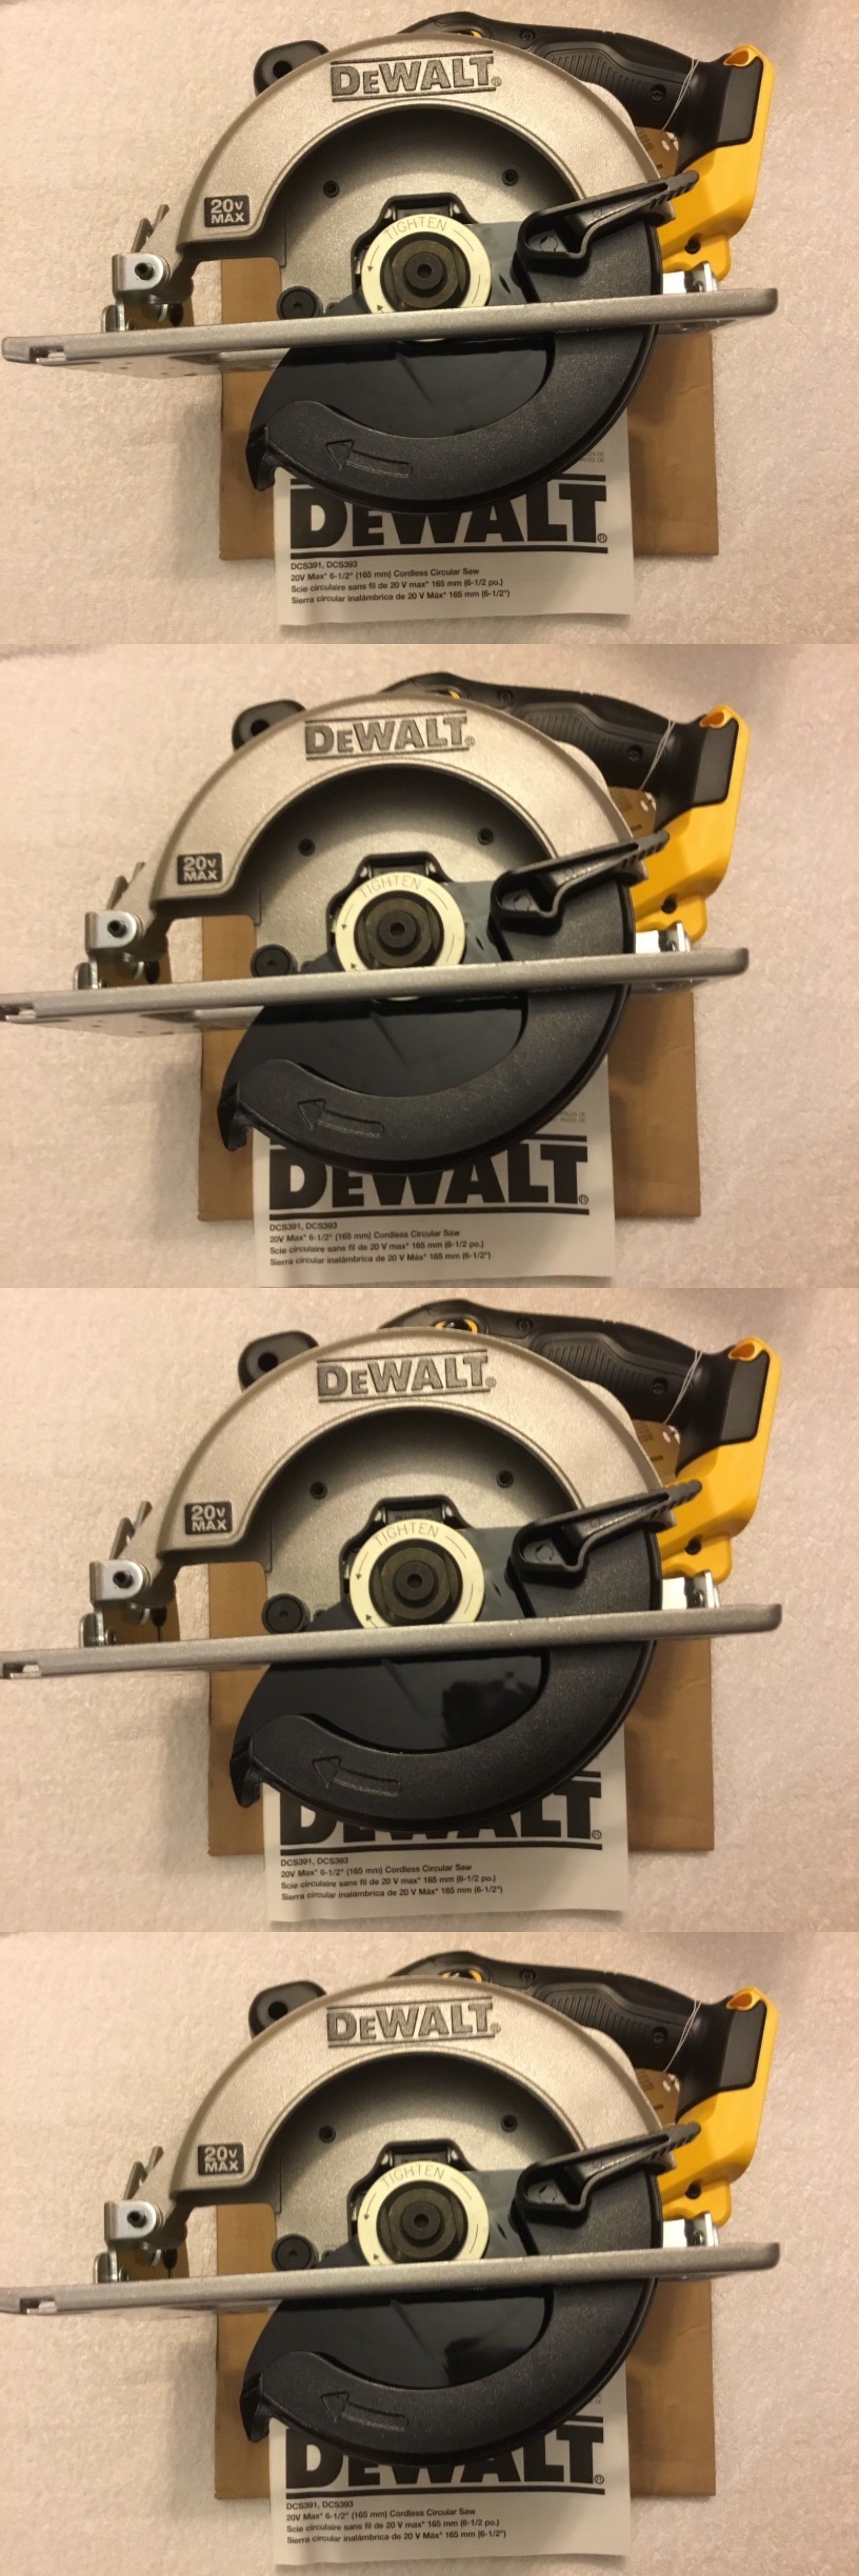 I Just Learned How To Change A Circular Saw Blade Did You Know The Screw Needs To Be Turned To The Right In Order T Circular Saw Blades Circular Saw Saw